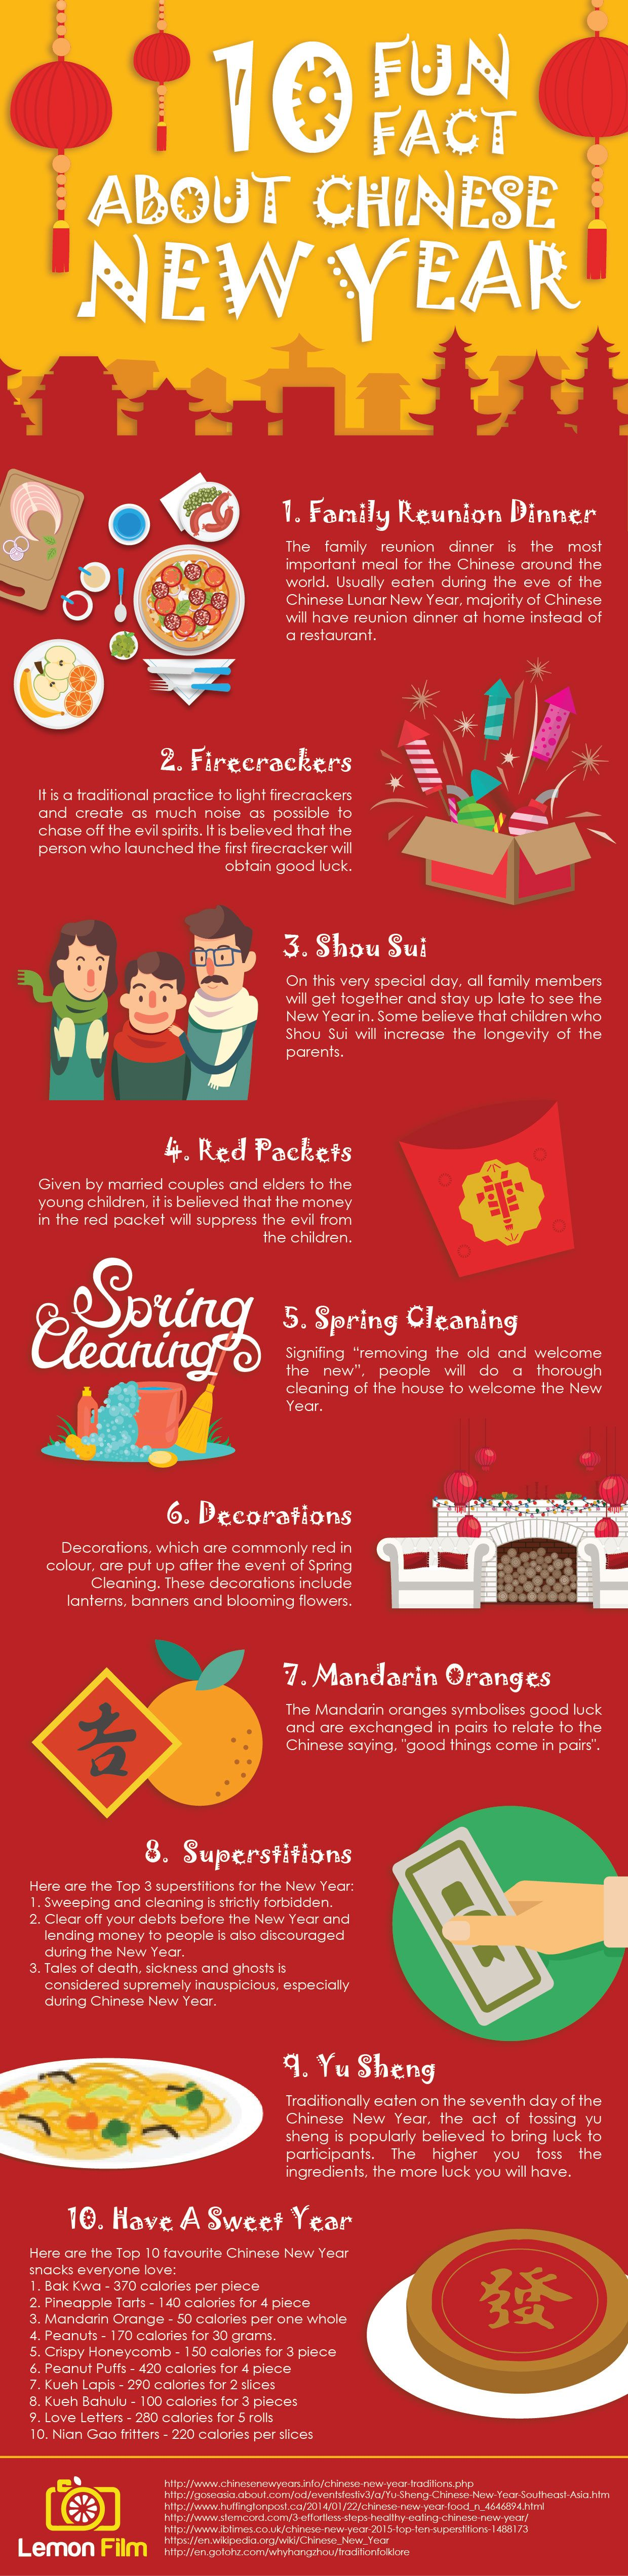 10 Fun Facts About Chinese New Year Infographic